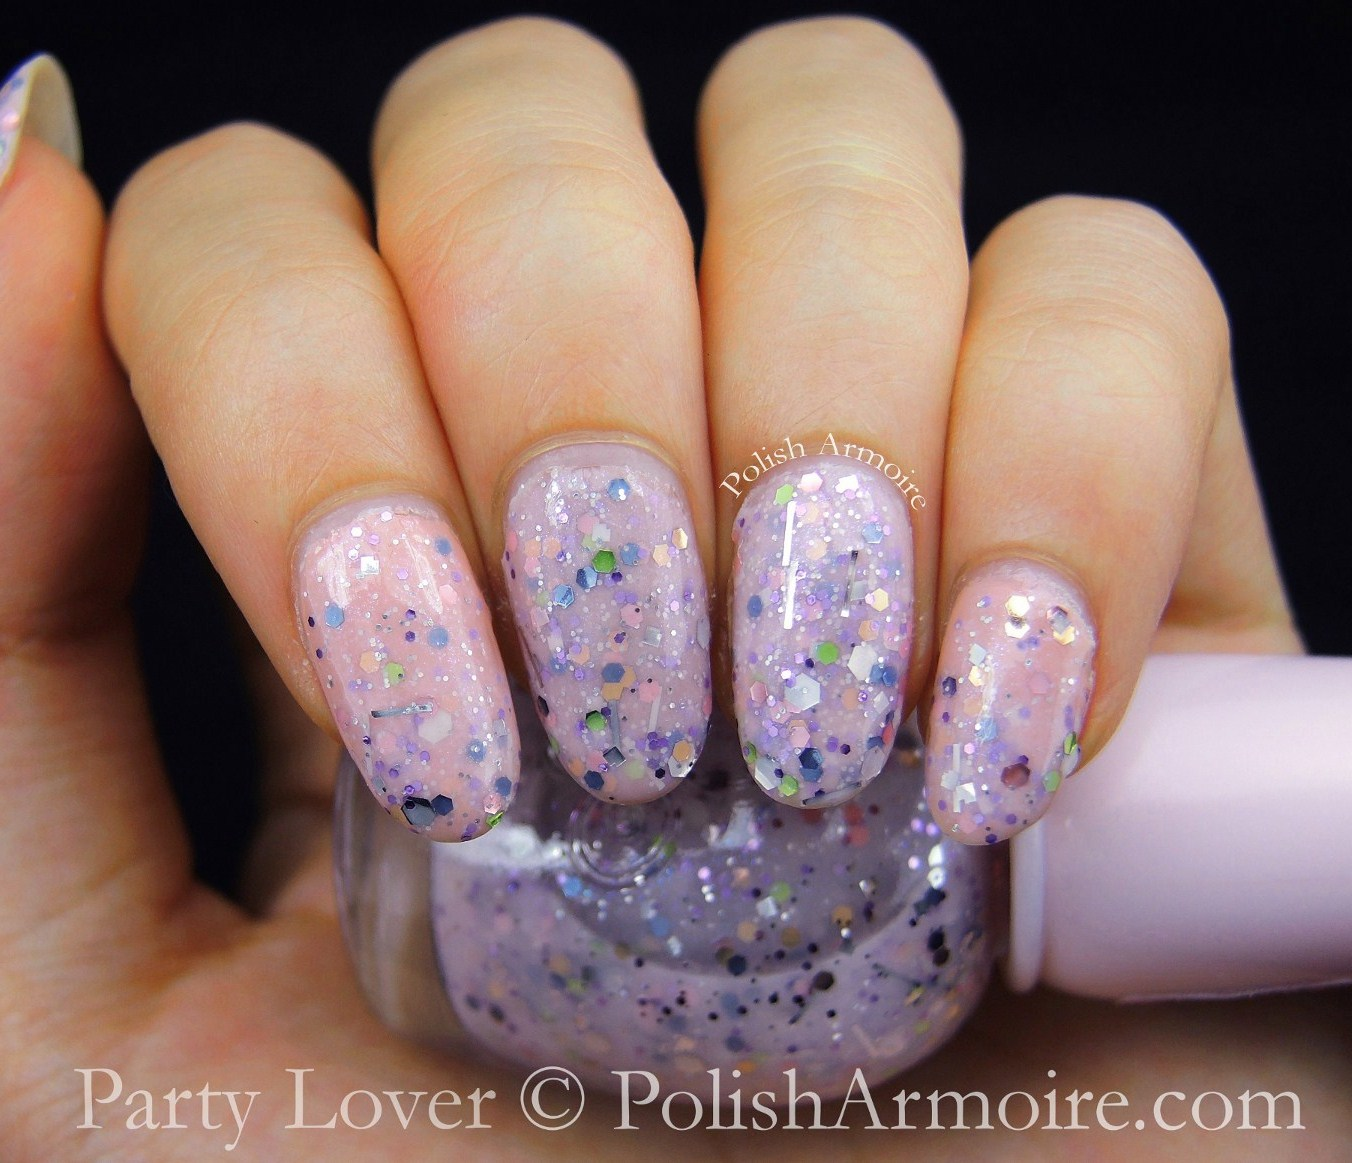 Etude House PPK006 Party Lover | POLISH ARMOIRE